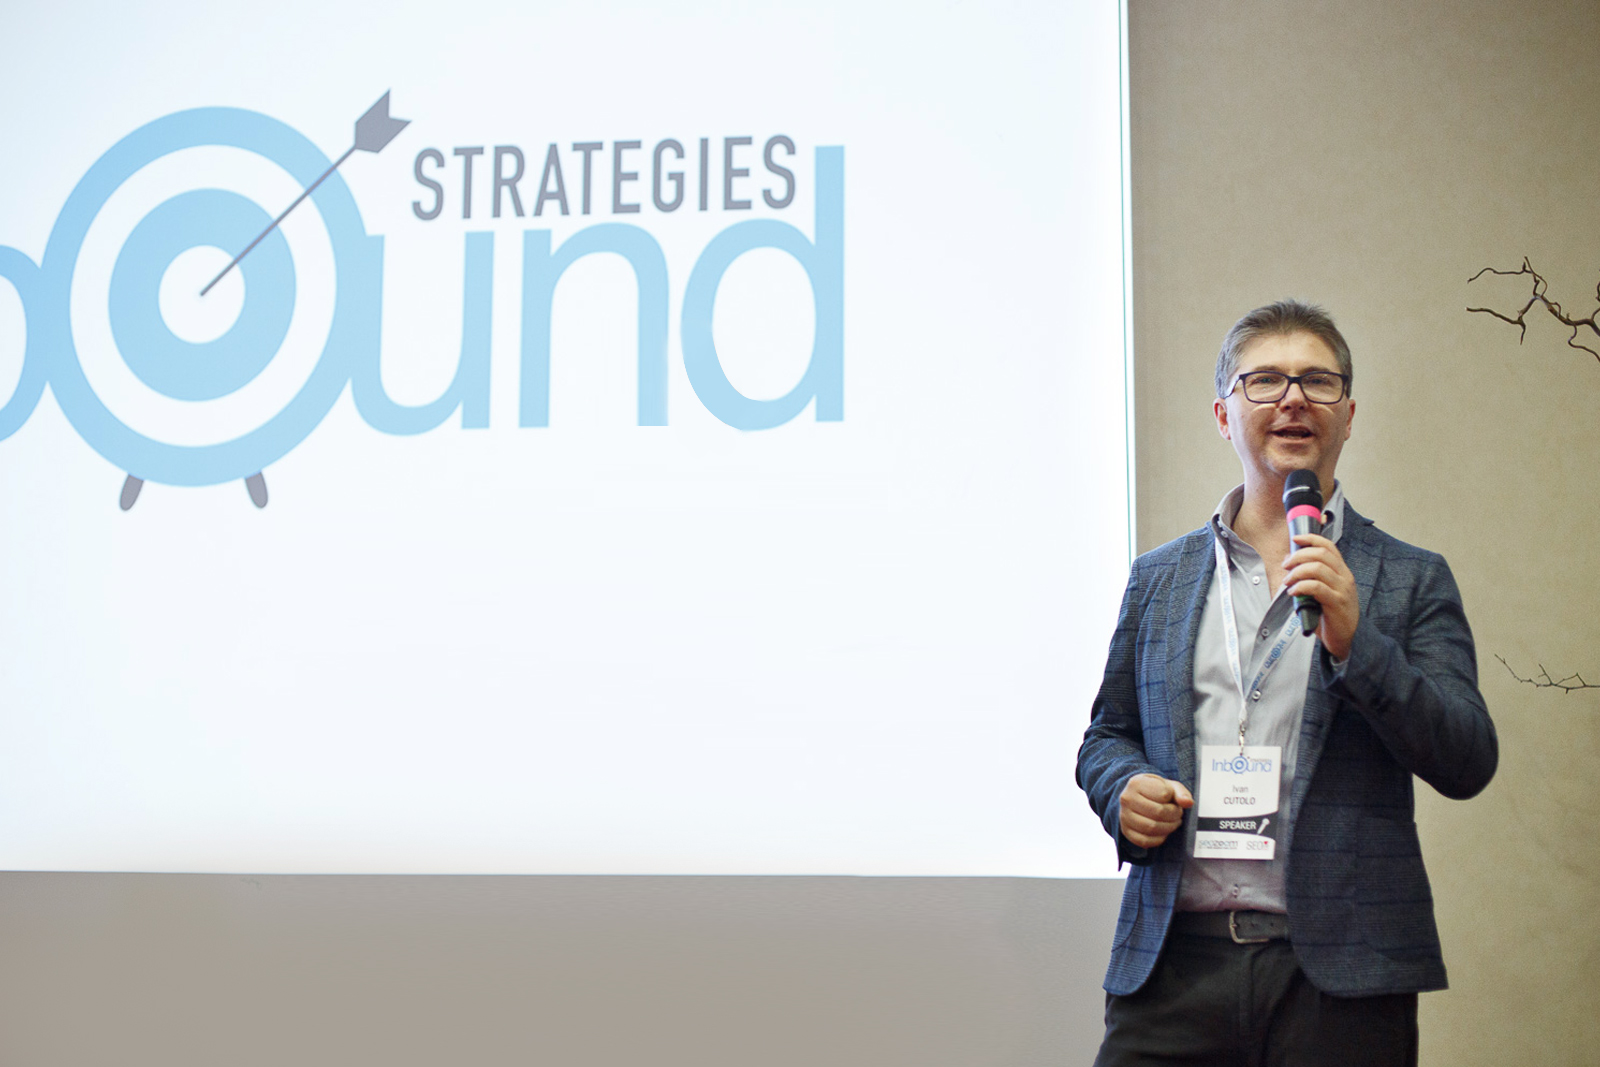 inbound strategies 2018-ivan cutolo-seochef